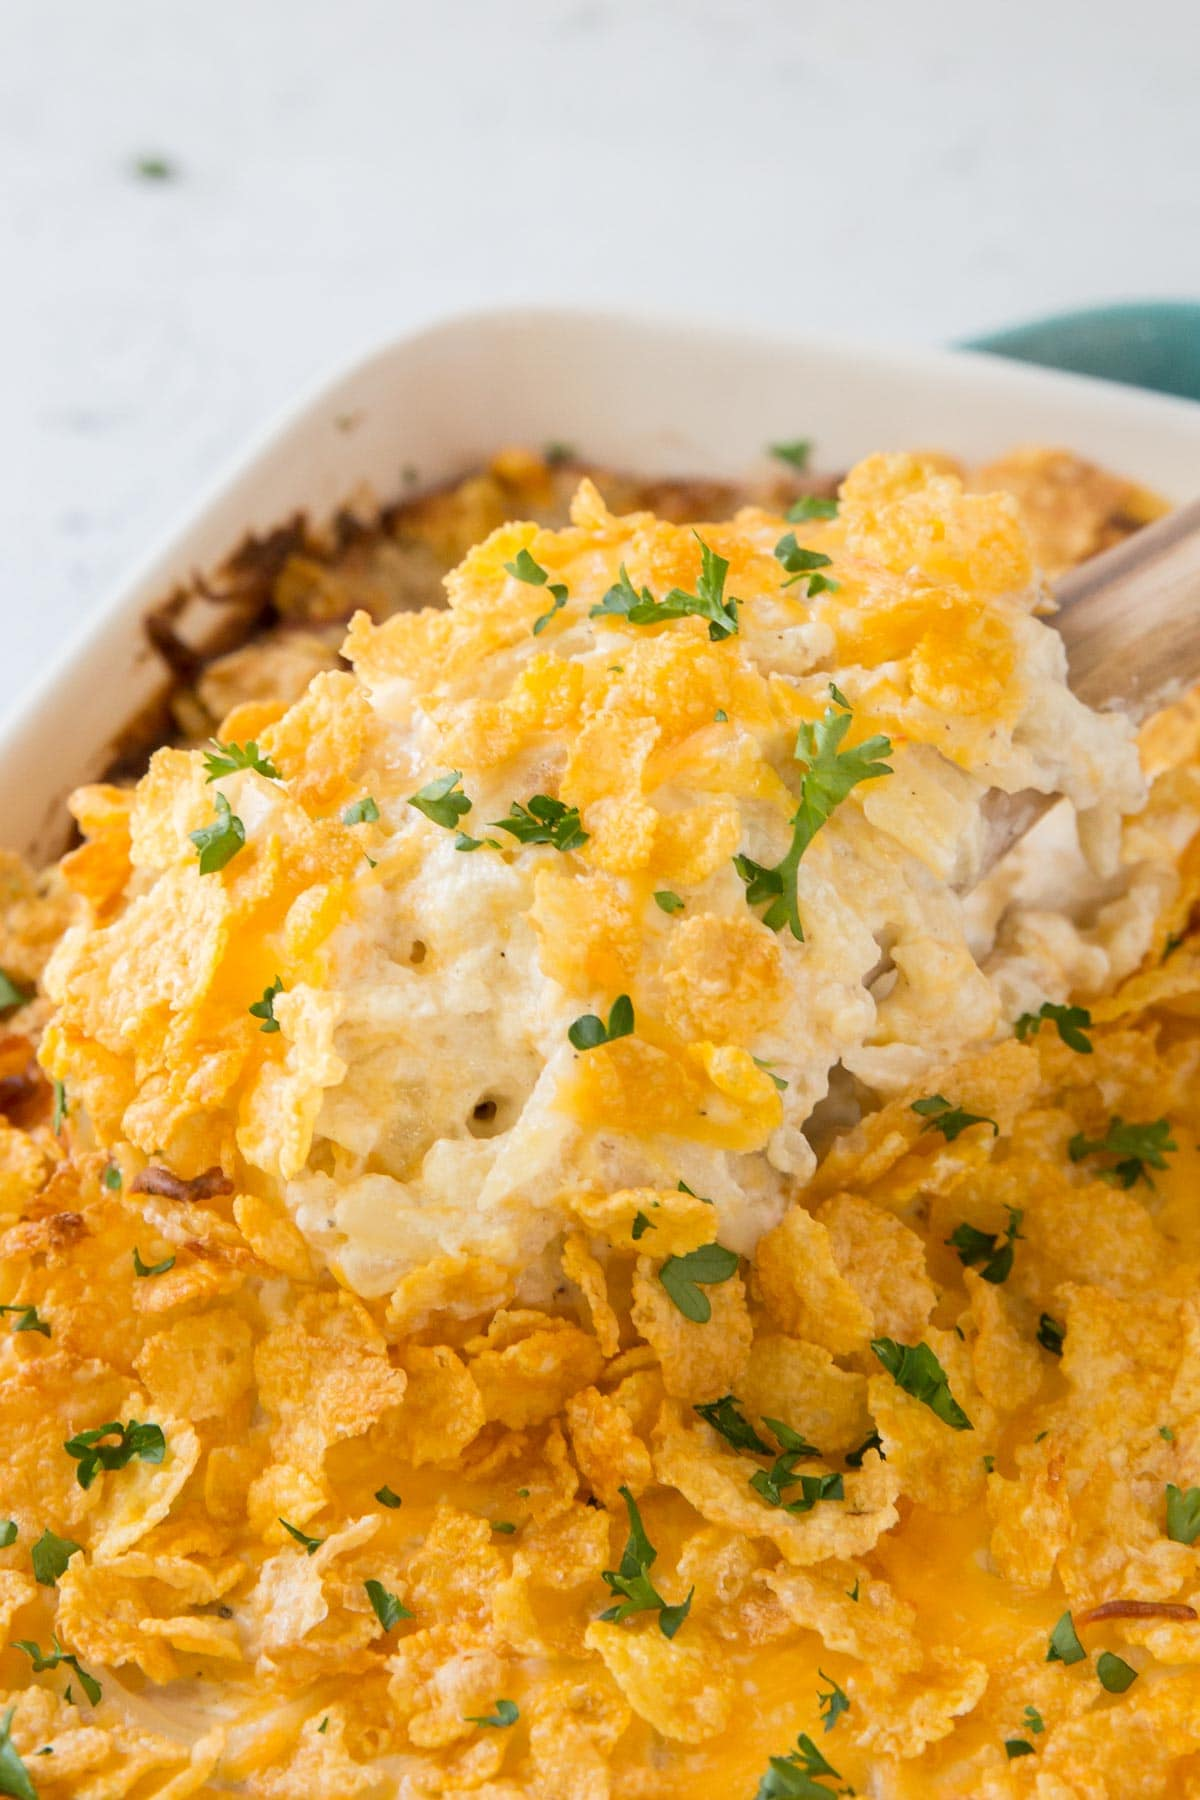 hashbrown casserole with corn flakes topping, wooden spoon, parsley